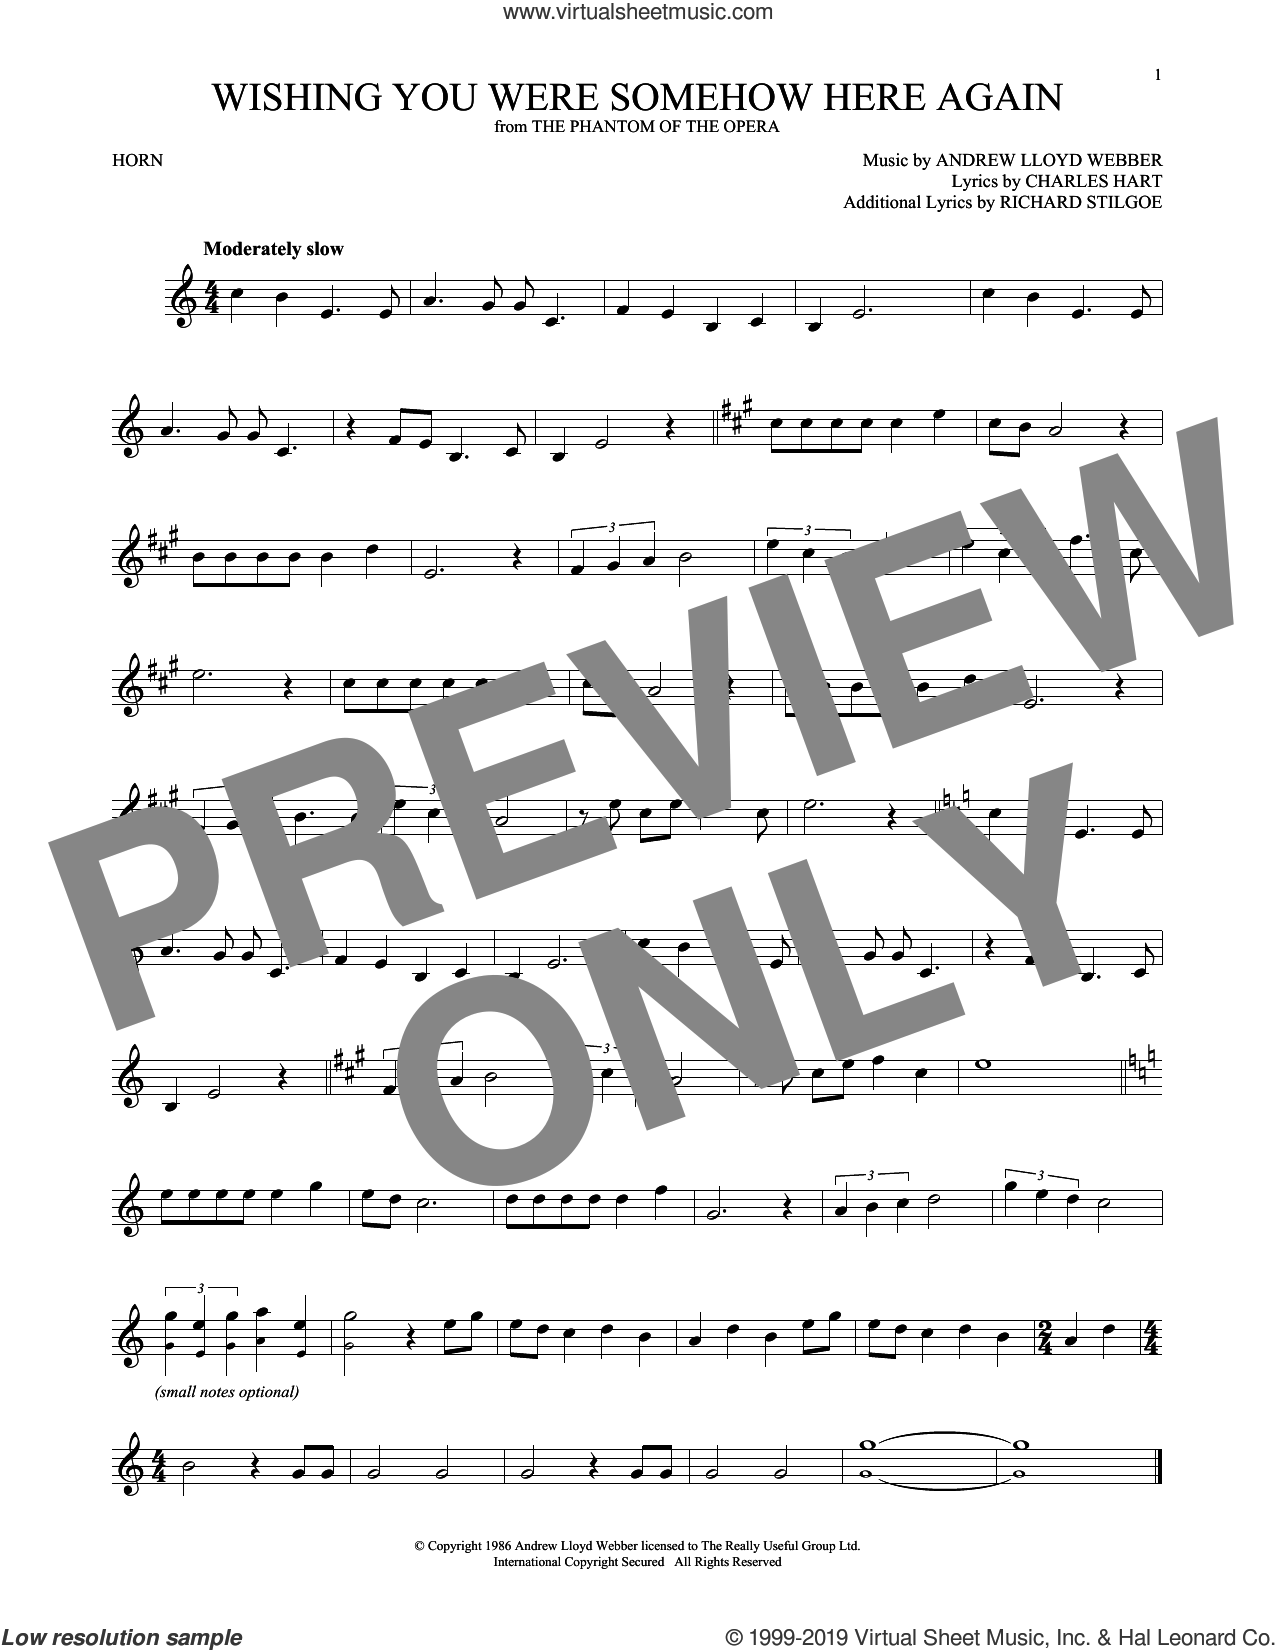 Wishing You Were Somehow Here Again (from The Phantom Of The Opera) sheet music for horn solo by Andrew Lloyd Webber, Charles Hart and Richard Stilgoe, intermediate skill level